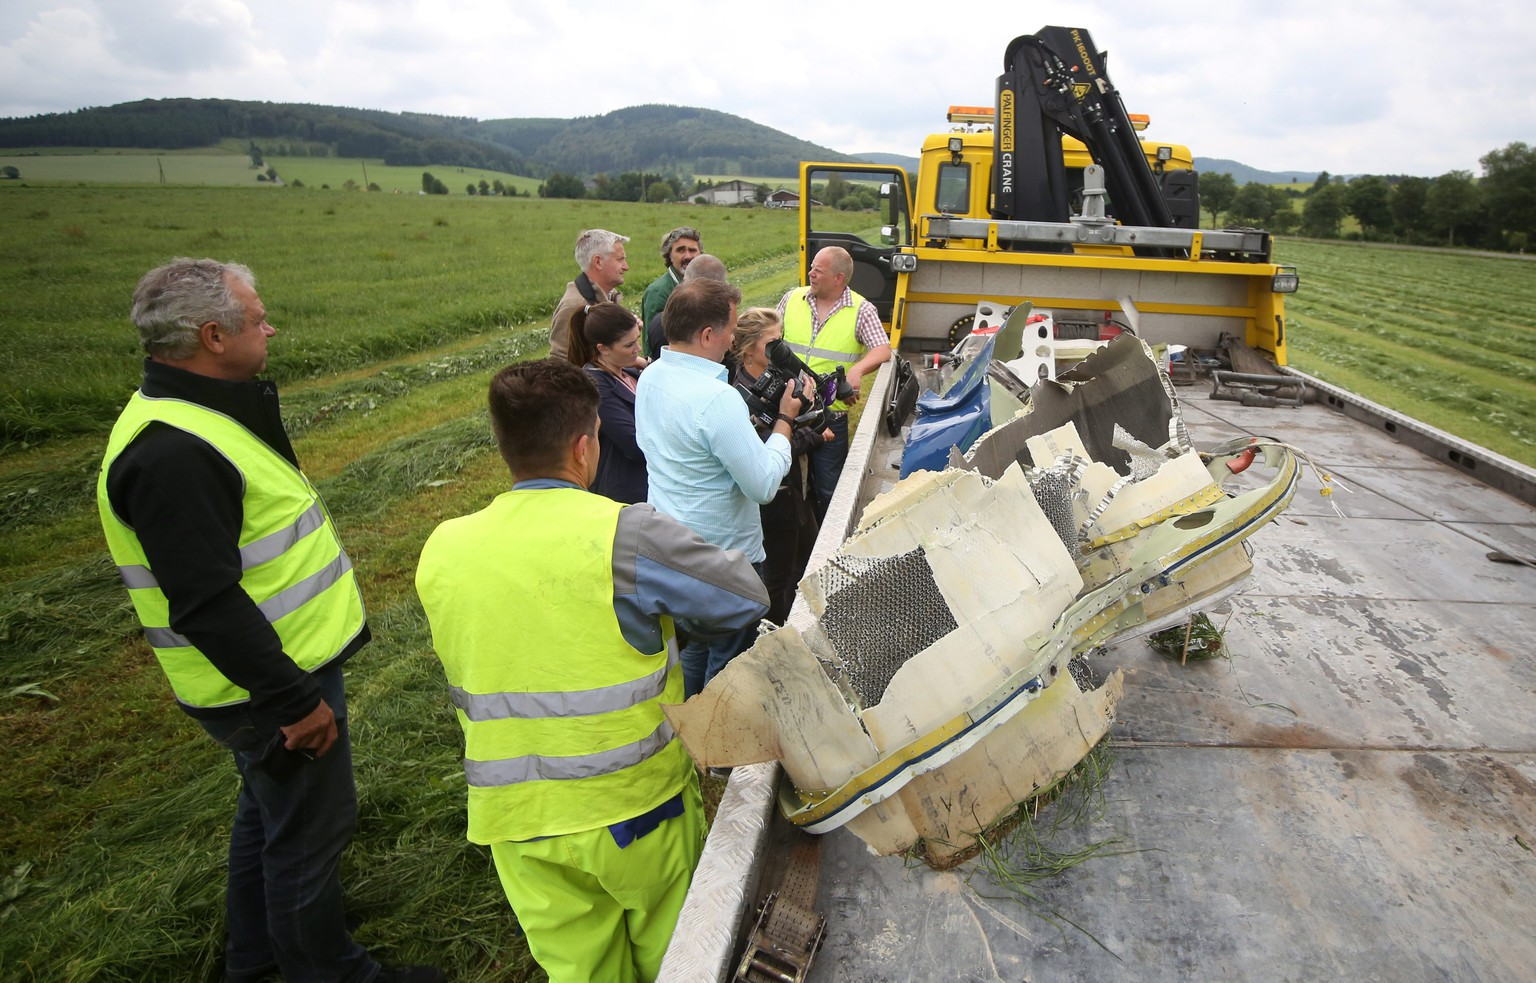 epa04278014 Journalists, officers of the Criminal Investigation Department and staff of a breakdown service stand next to a truck carrying wreckage near the sight of the crash of a Lear jet near Elpe, Germany, 24 June 2014. A Lear jet with two passengers crashed after colliding with a Eurofighter of the German Air Force over Olsberg. The Eurofighter was able to land at its base in Noervenich near Cologne after the collision.  EPA/MARCEL KUSCH